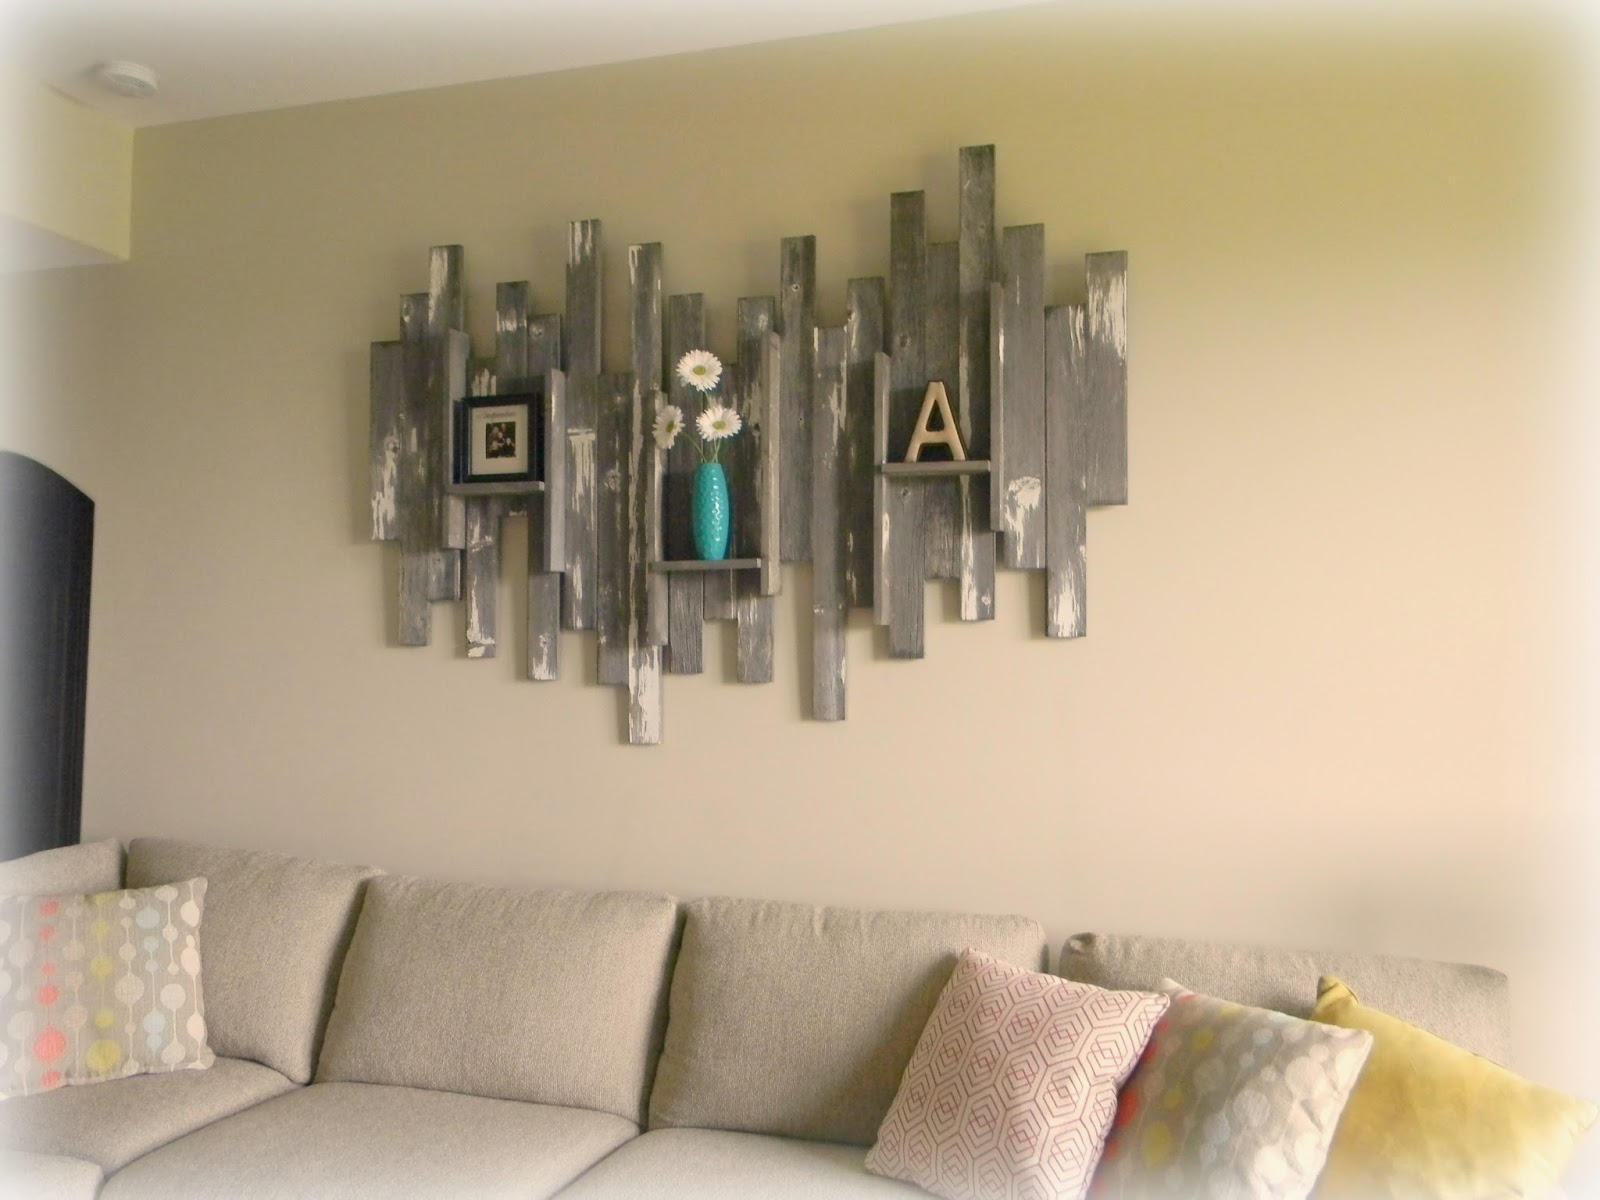 Barn Wood Wall Art Basement